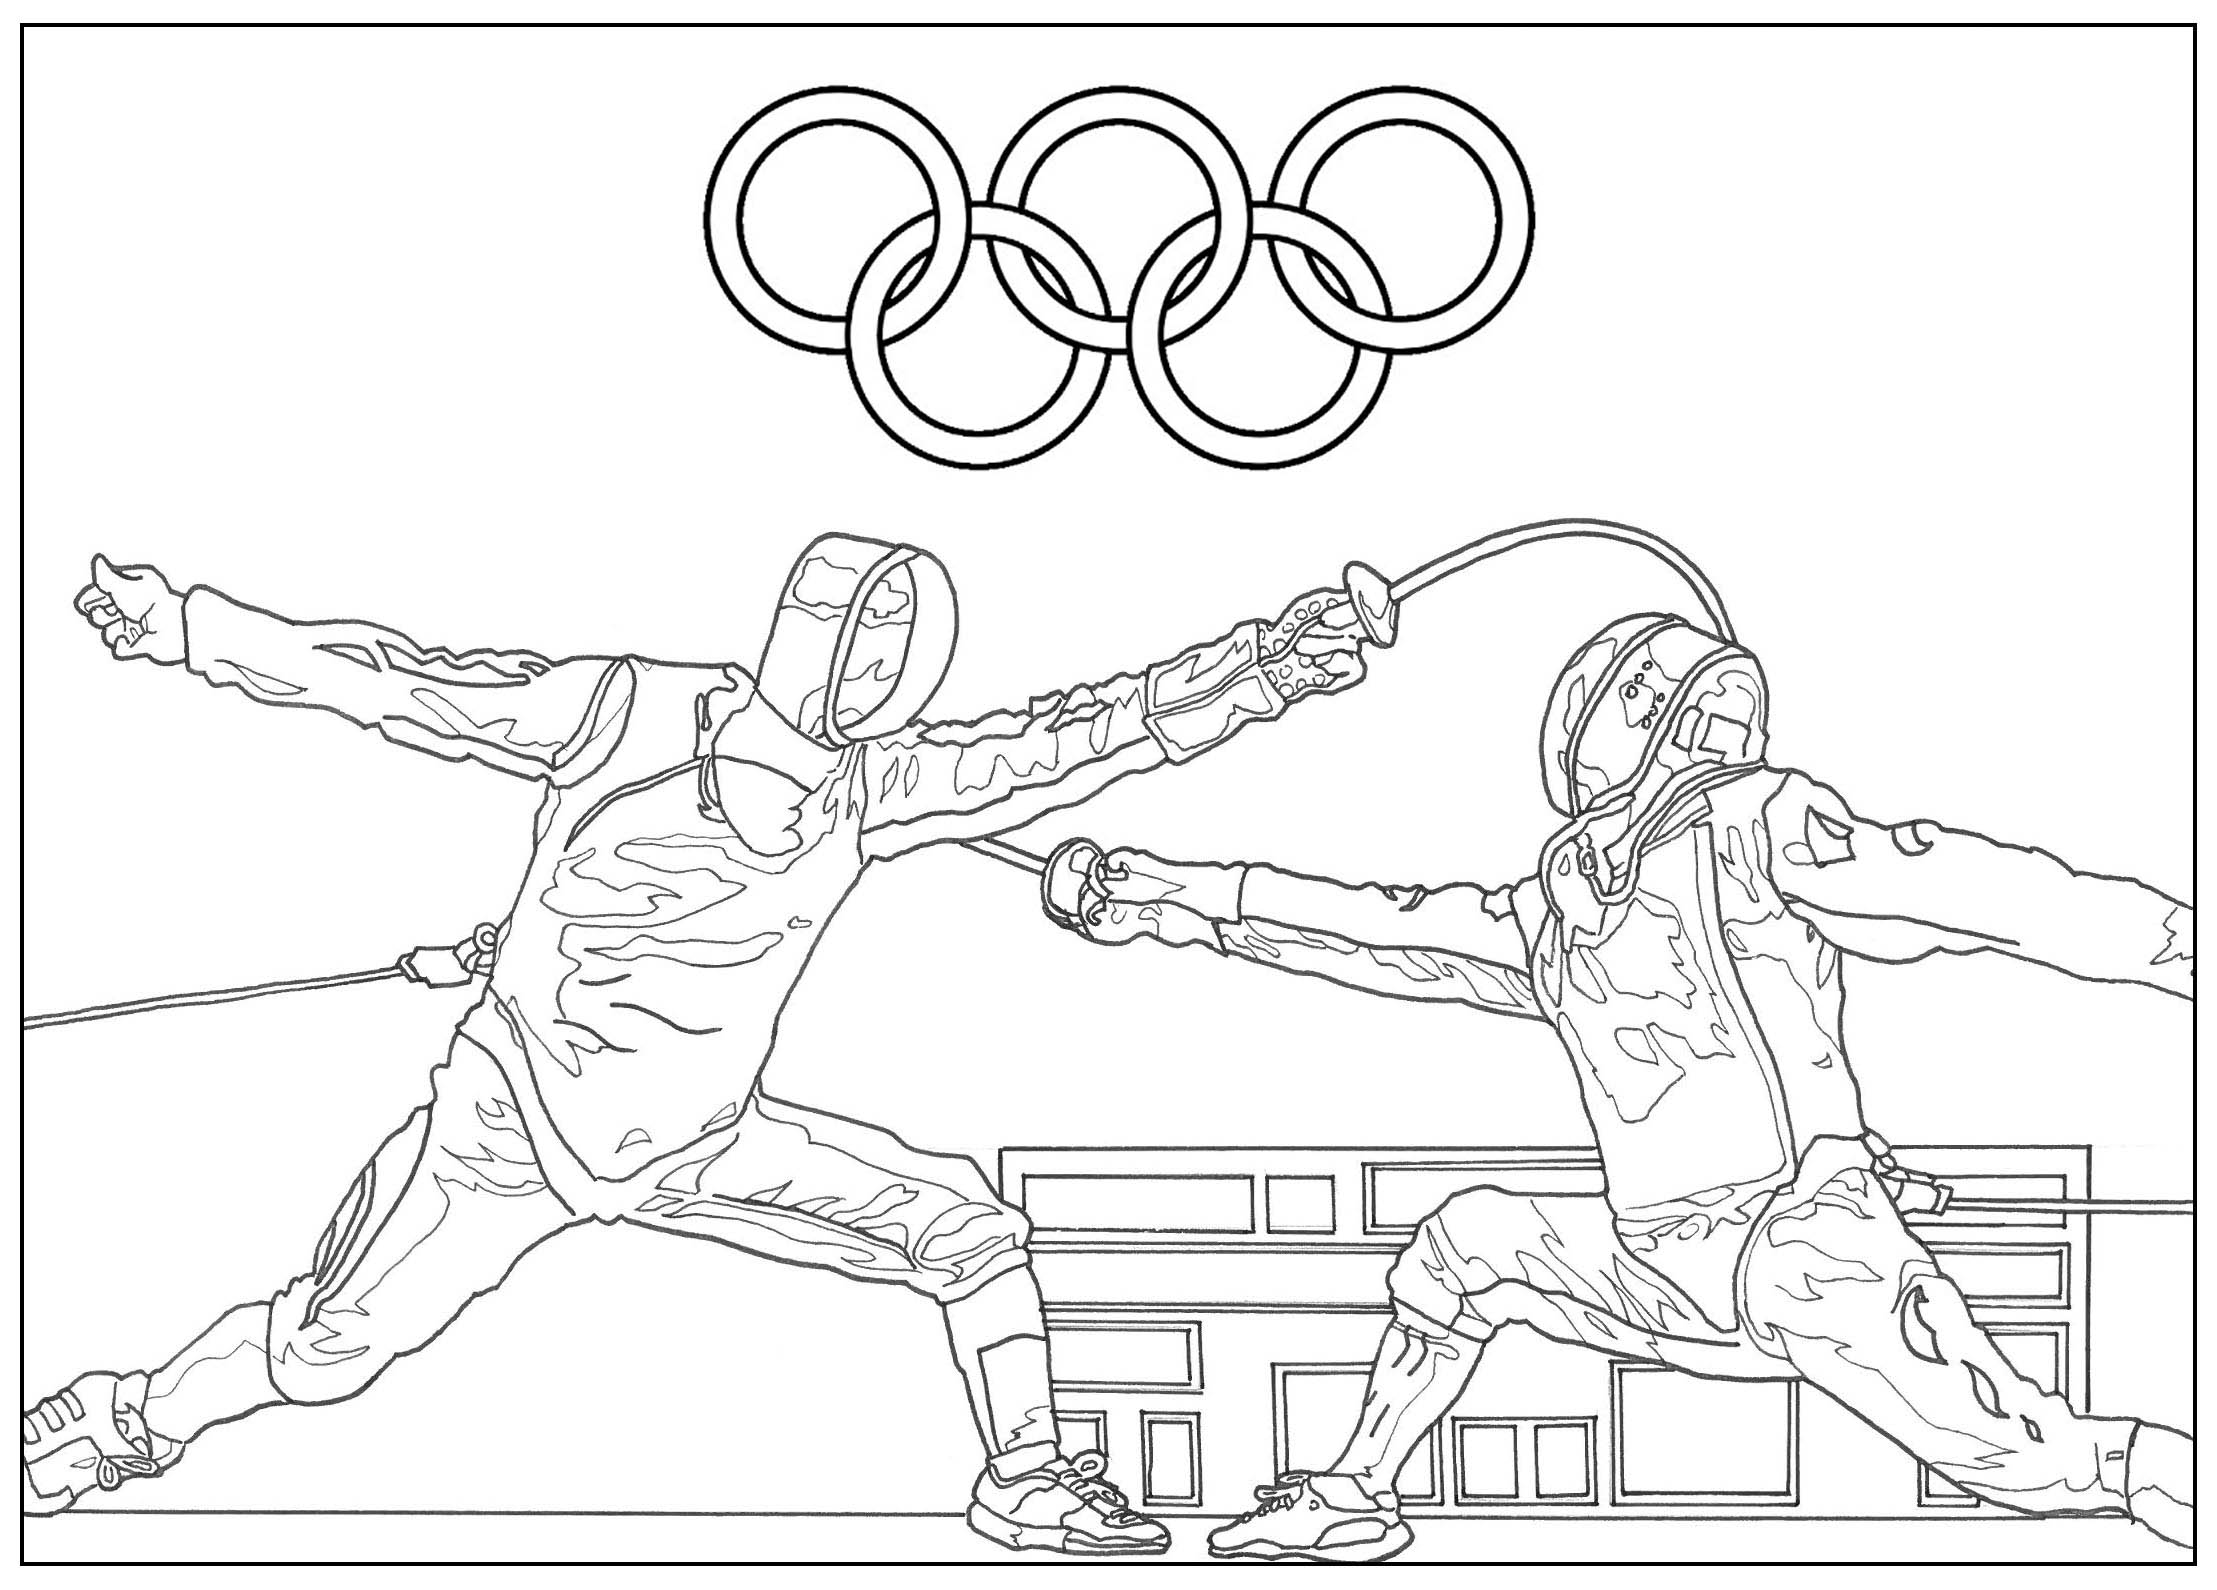 Sports Coloring Pages For Adults.  sport coloring pages for adults Olympic games fencing Print and